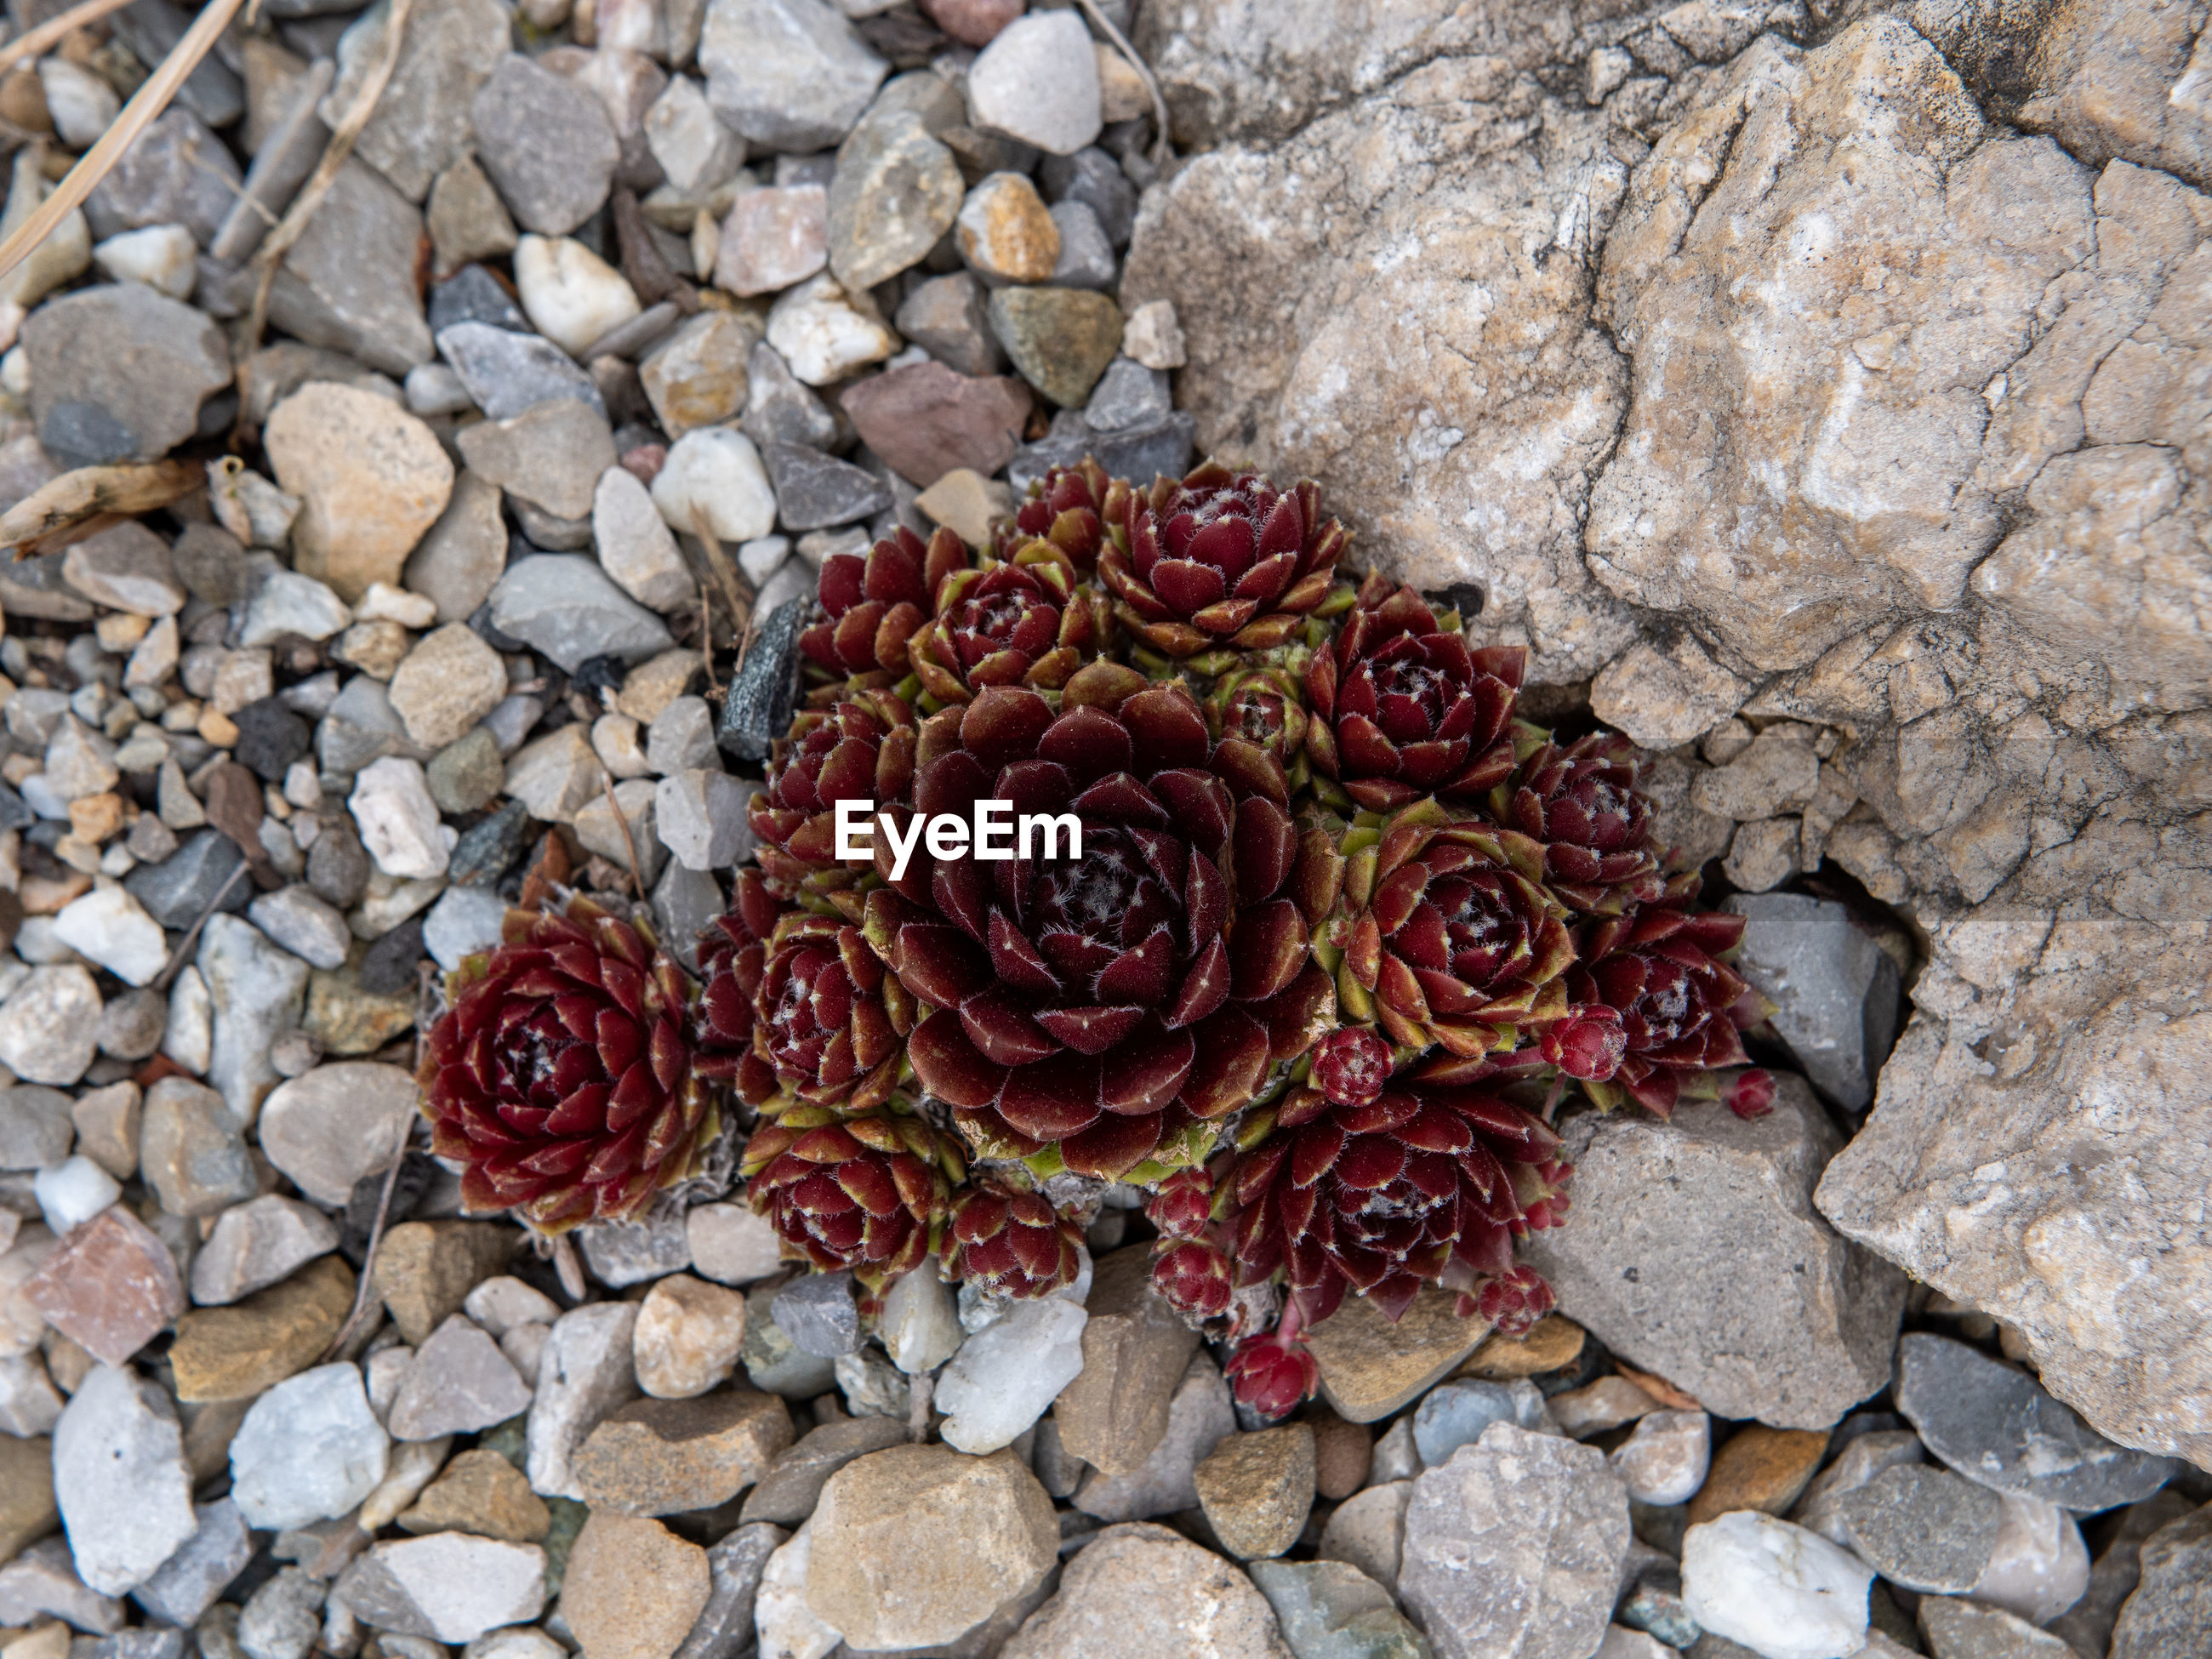 CLOSE-UP OF RED ROSE ON ROCK